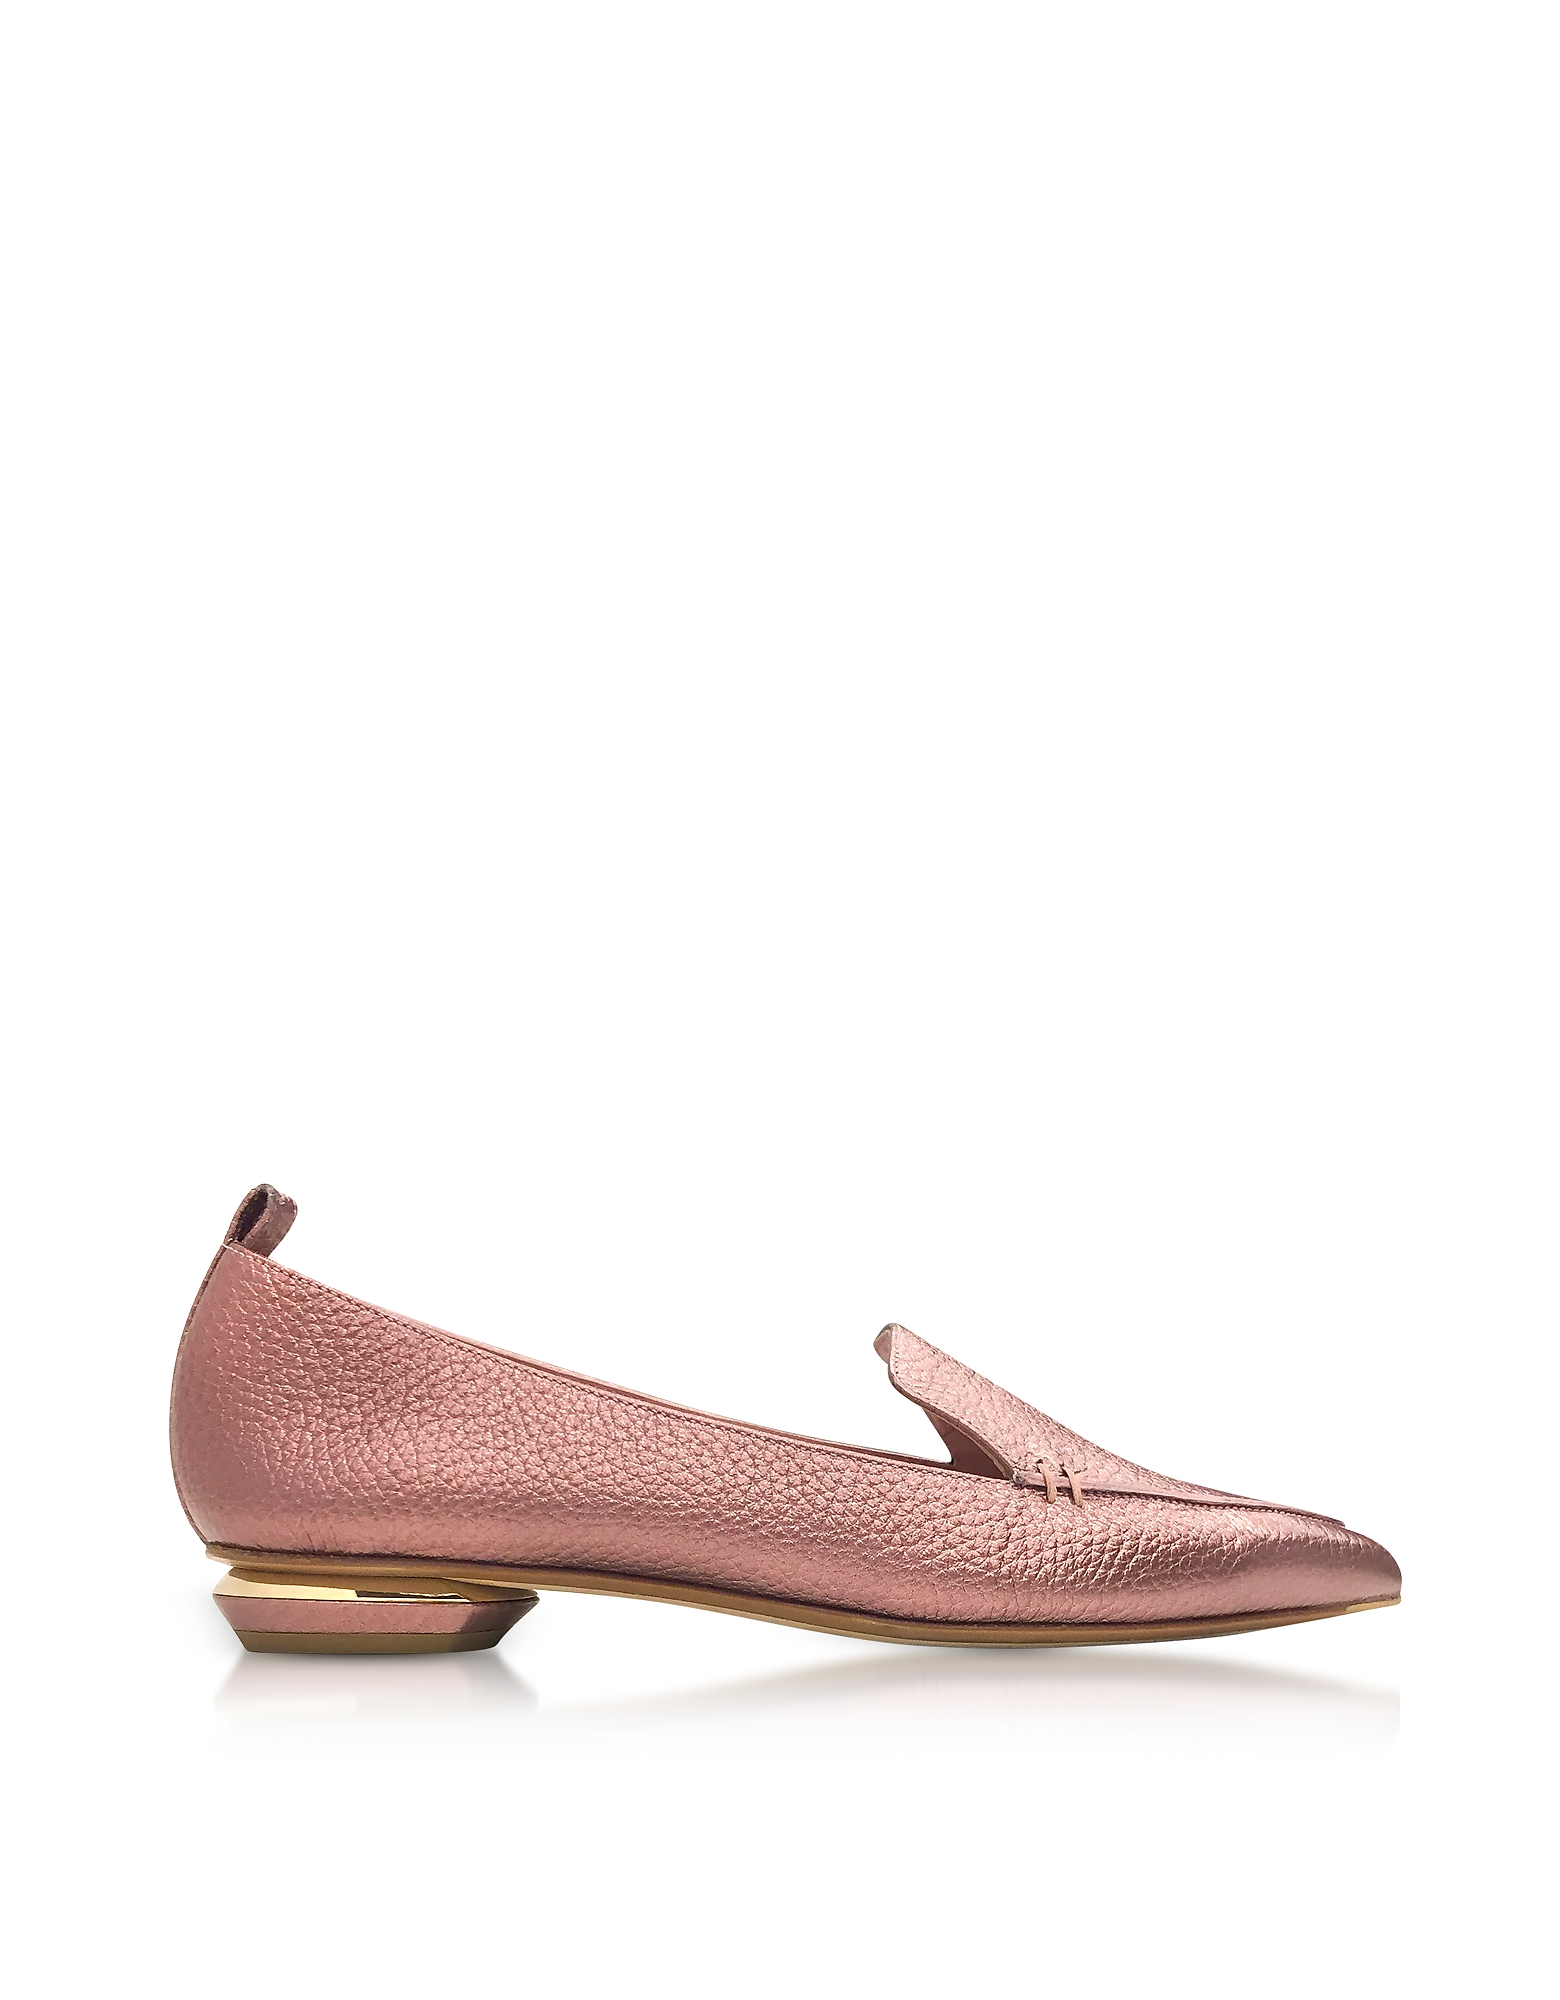 Nicholas Kirkwood Shoes, Beya Dusty Pink Metallic Tumbled Leather Loafer